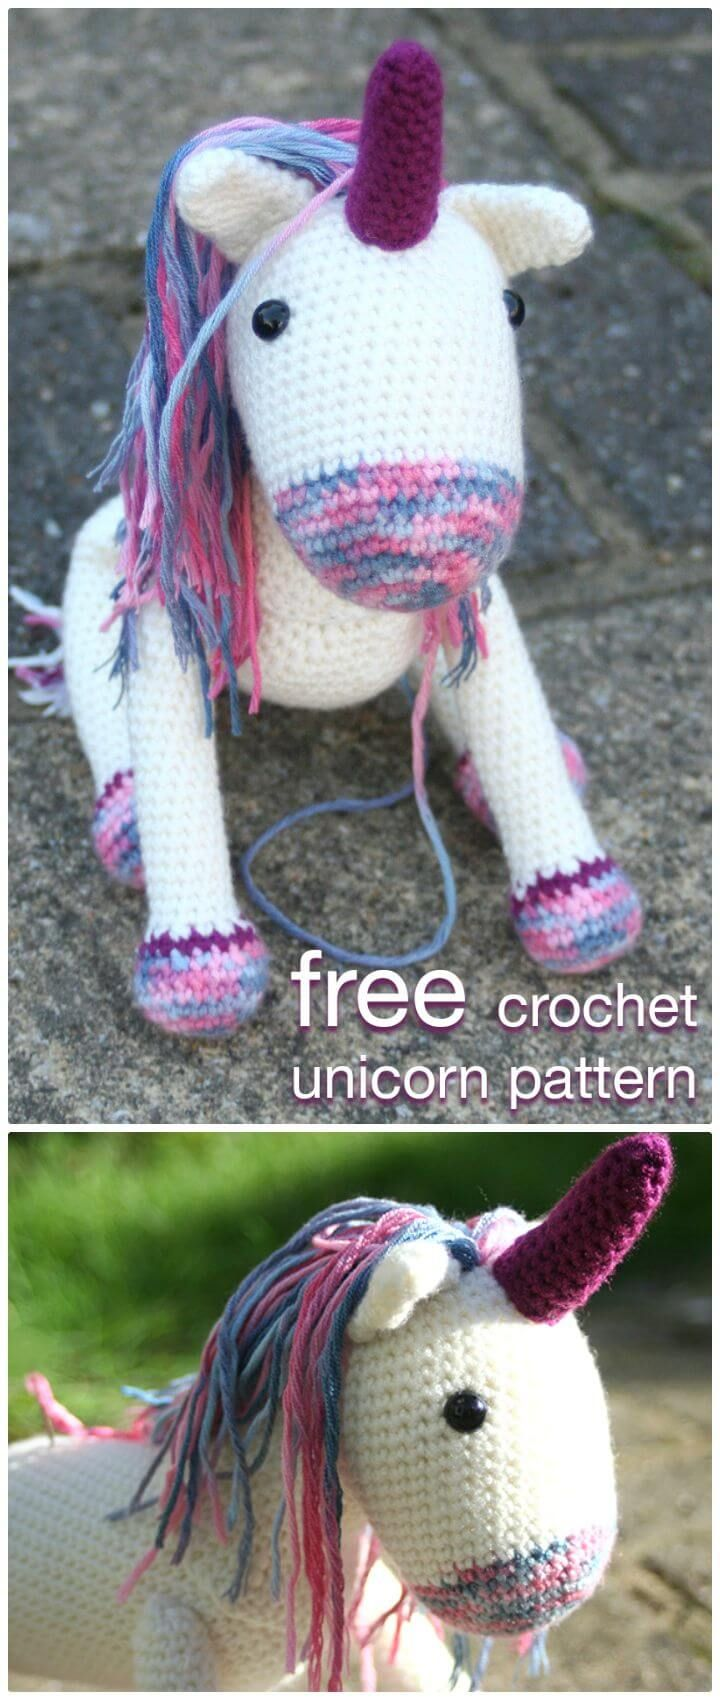 Crochet Unicorn Pattern 32 Free Crochet Patterns Unicorn Pattern